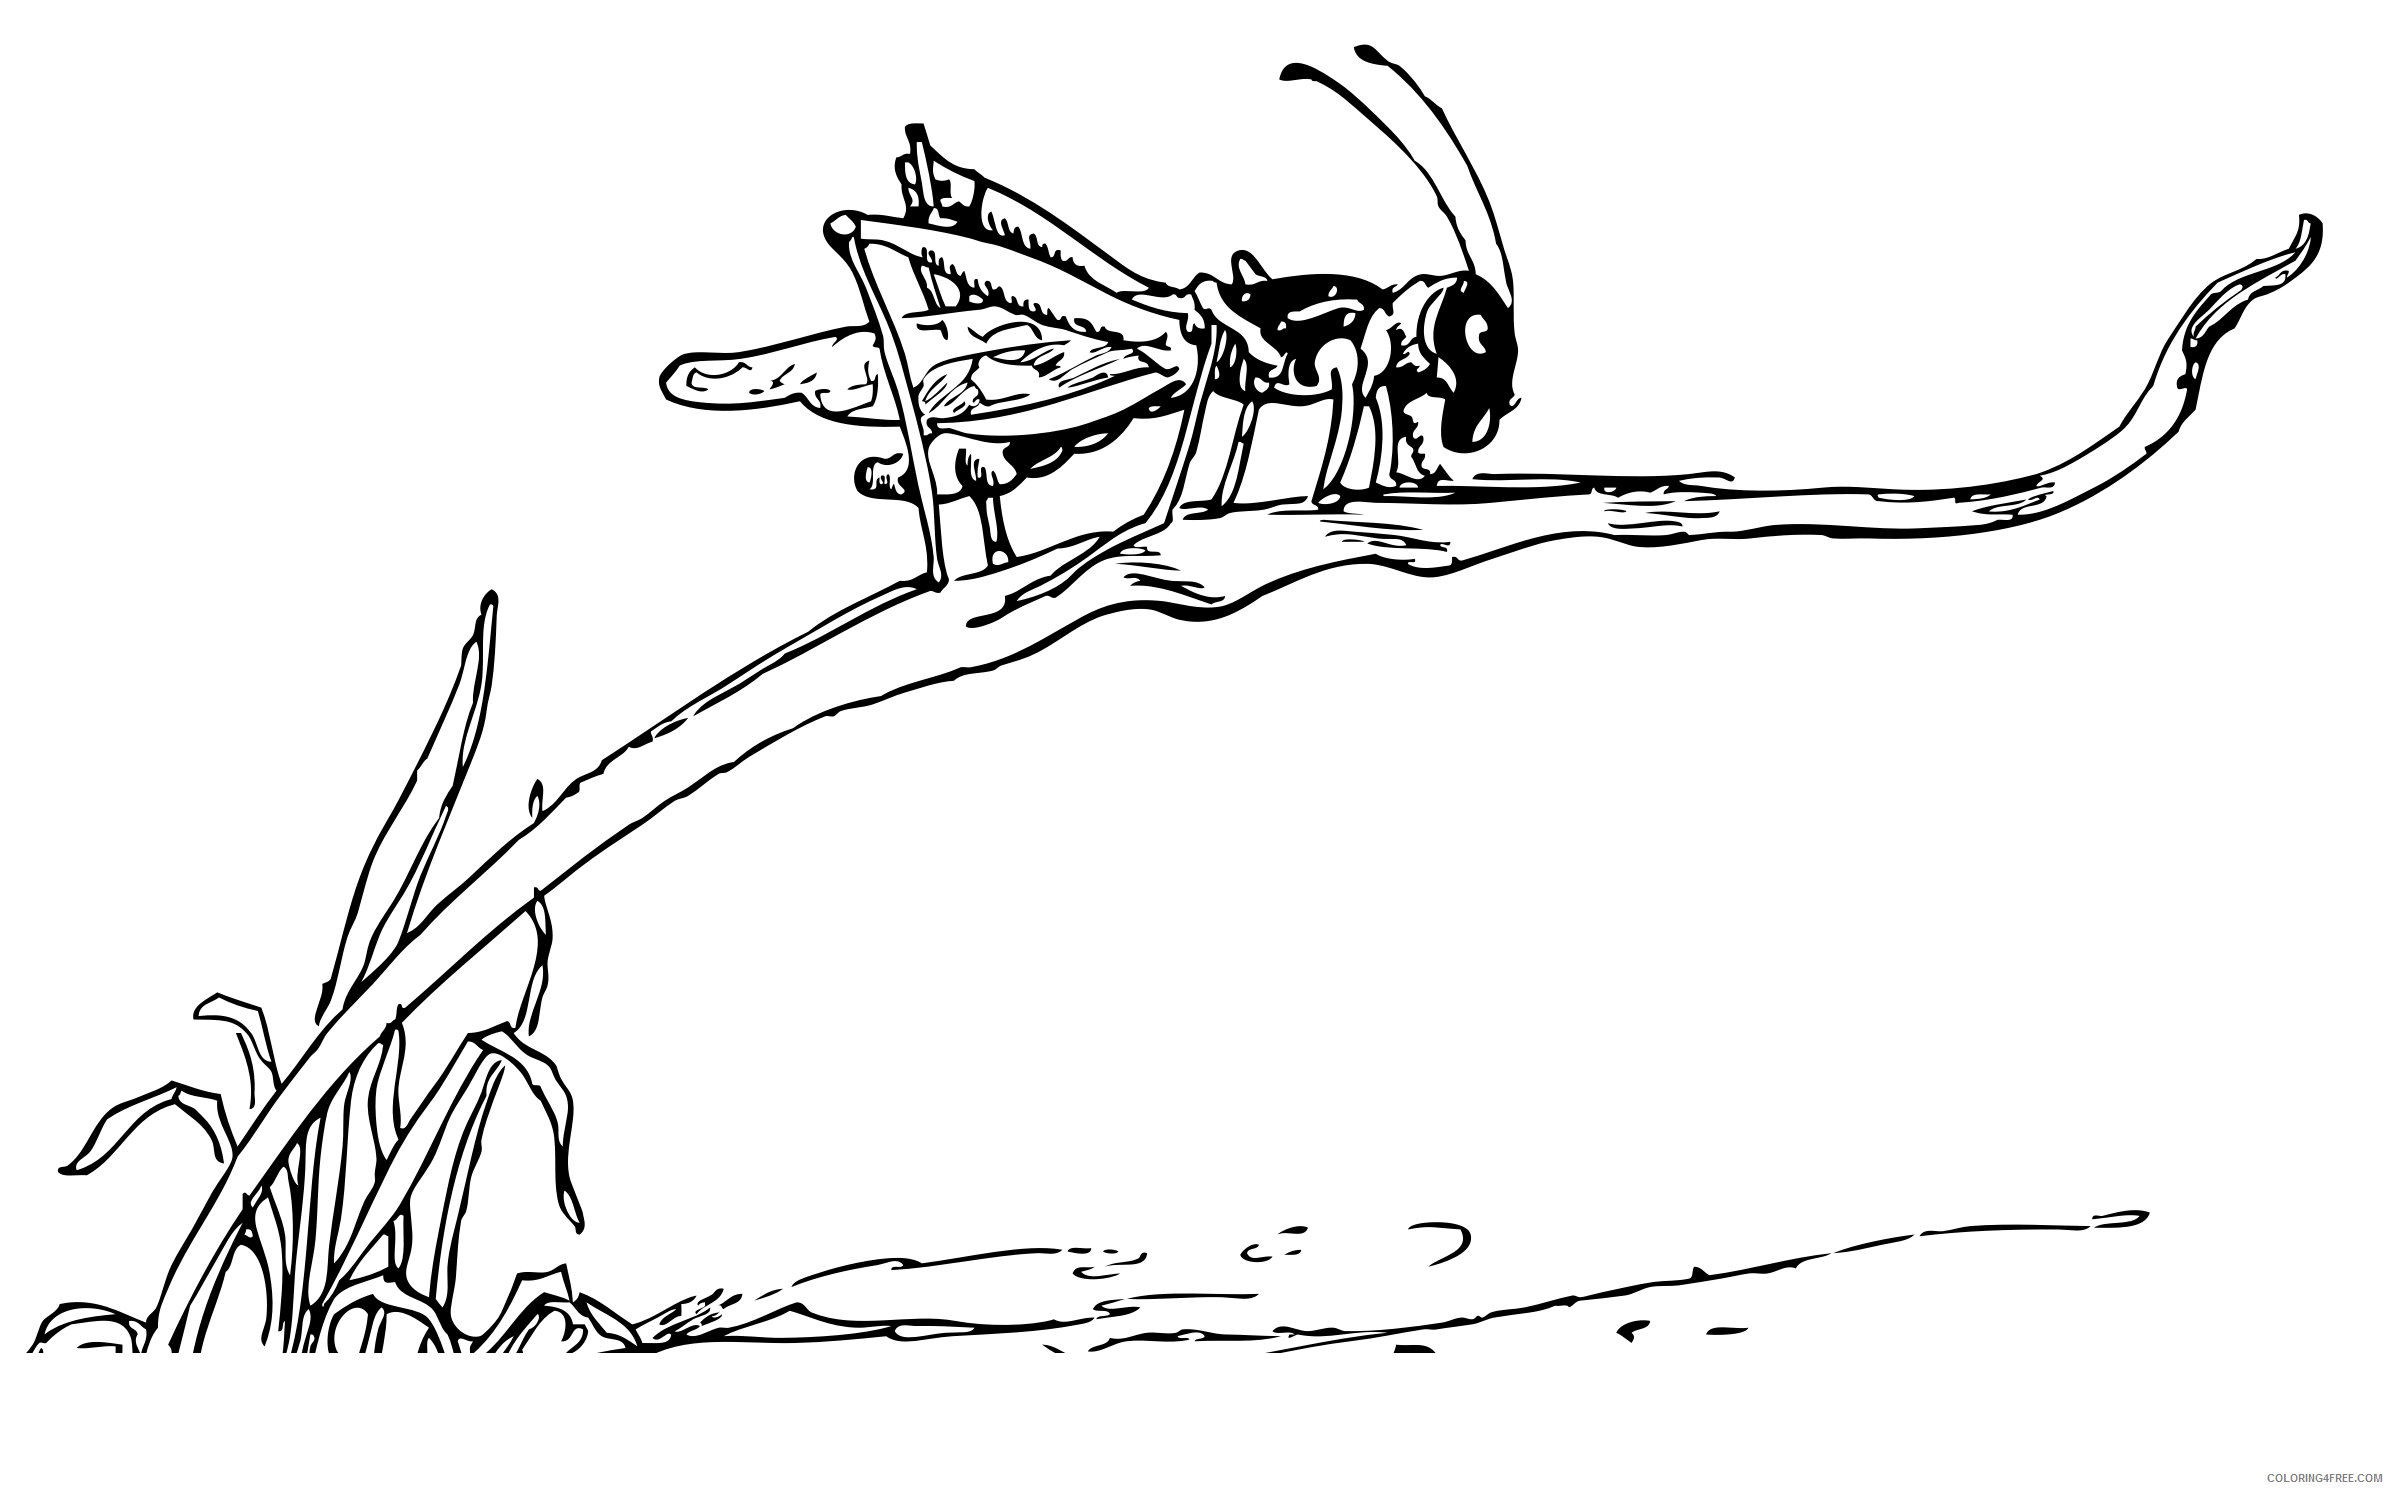 Grasshopper Coloring Pages grasshopper on blade of grass Printable Coloring4free